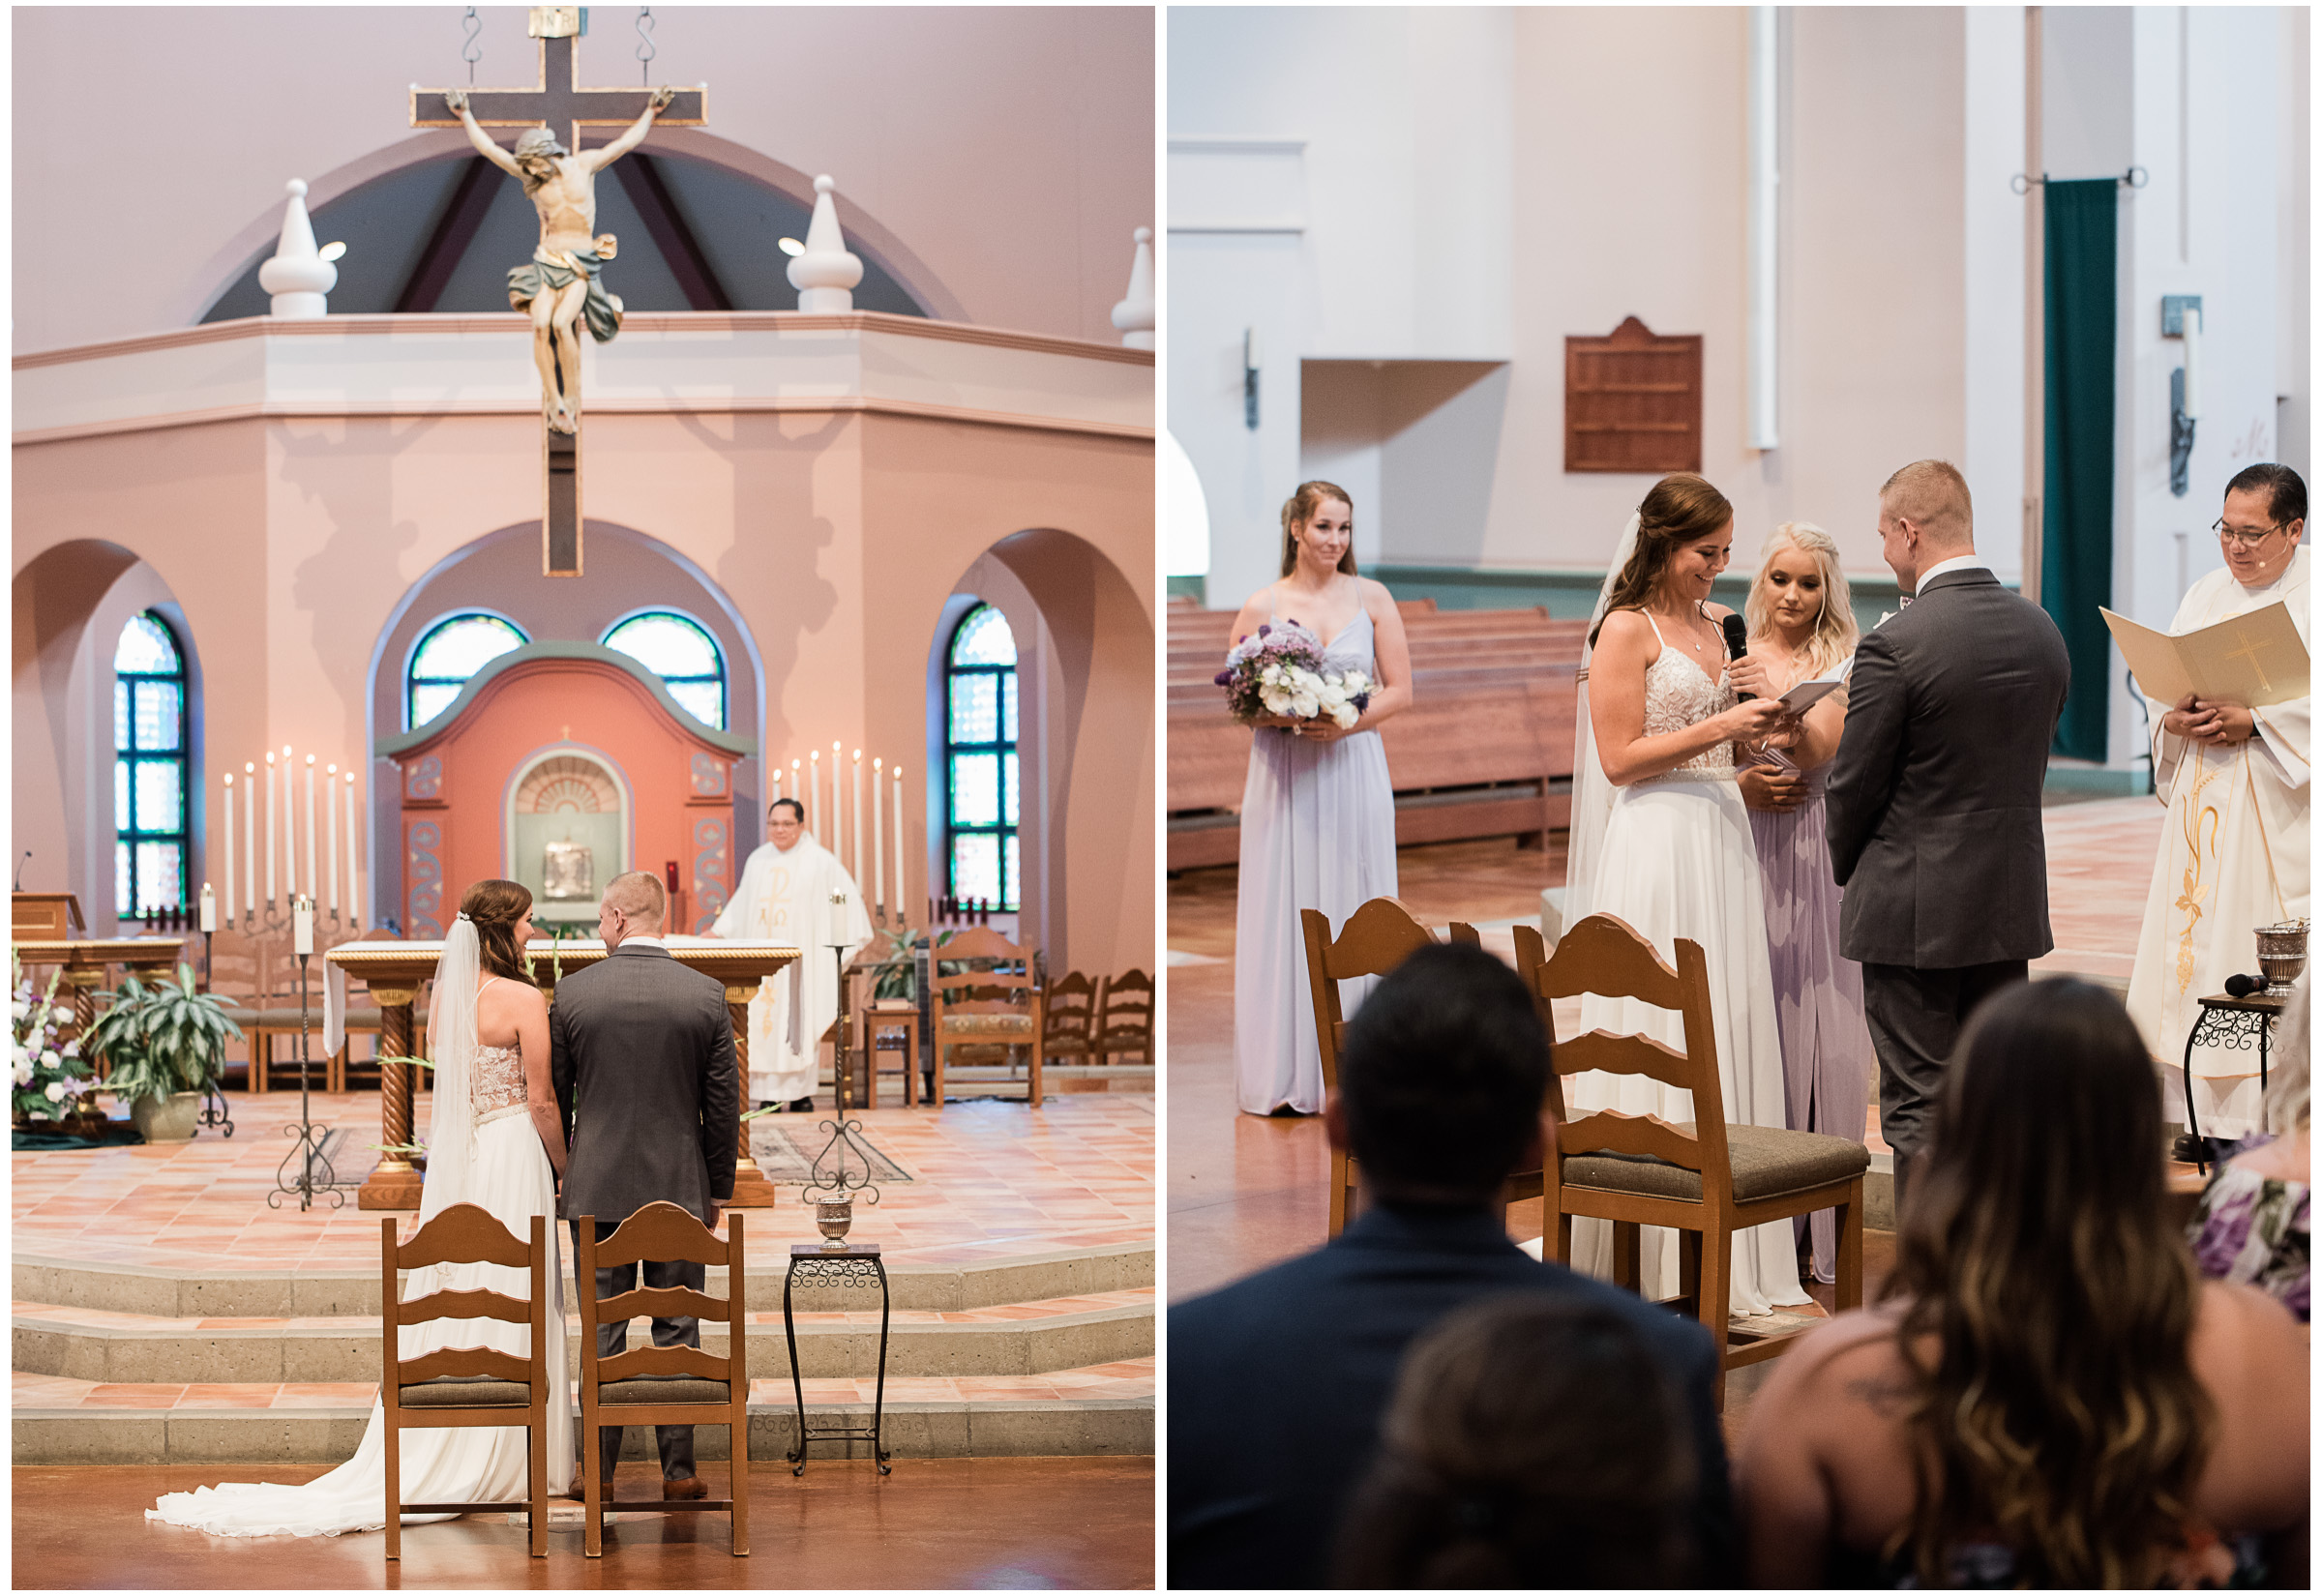 Loomis Wedding - Sacramento Photographer - Blue Goose - Justin Wilcox Photography - 12.jpg